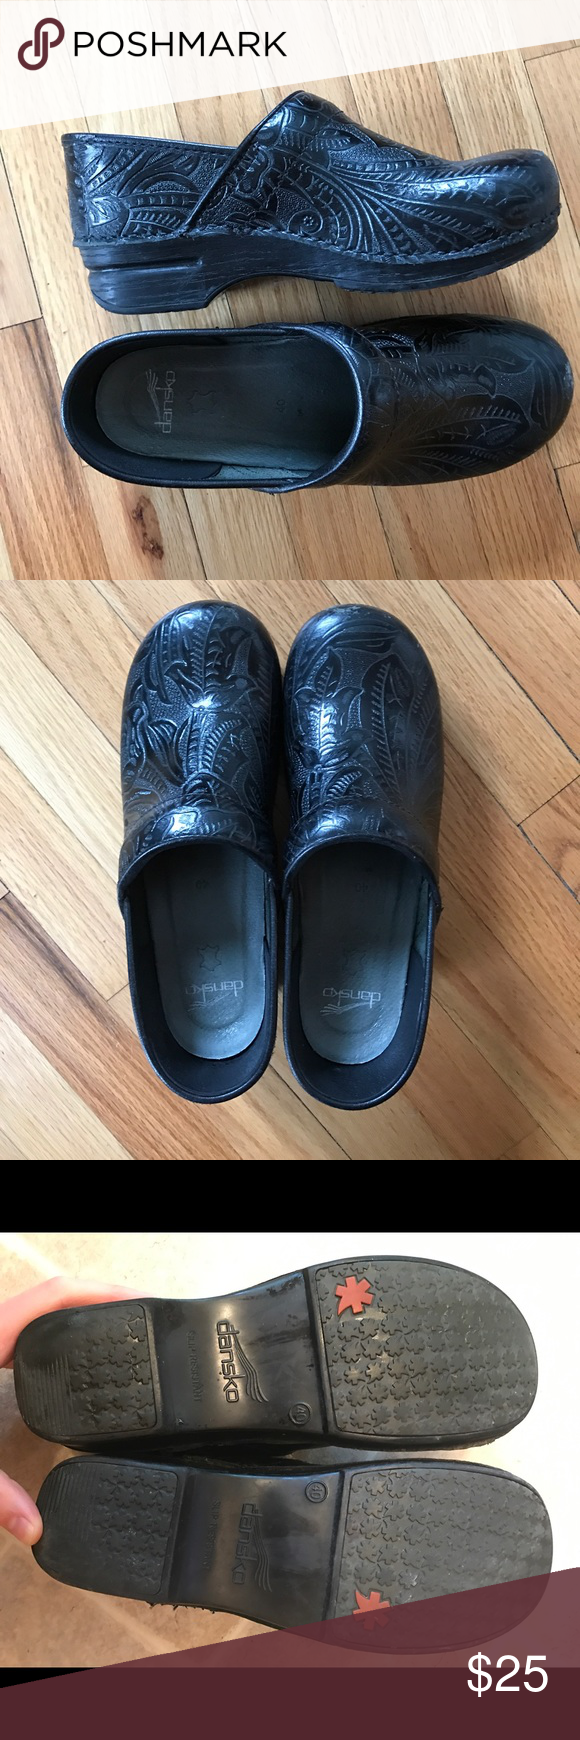 Dansko black clogs Black, floral design Danskos. Very little wear, in great shape. Dansko Shoes Mules & Clogs